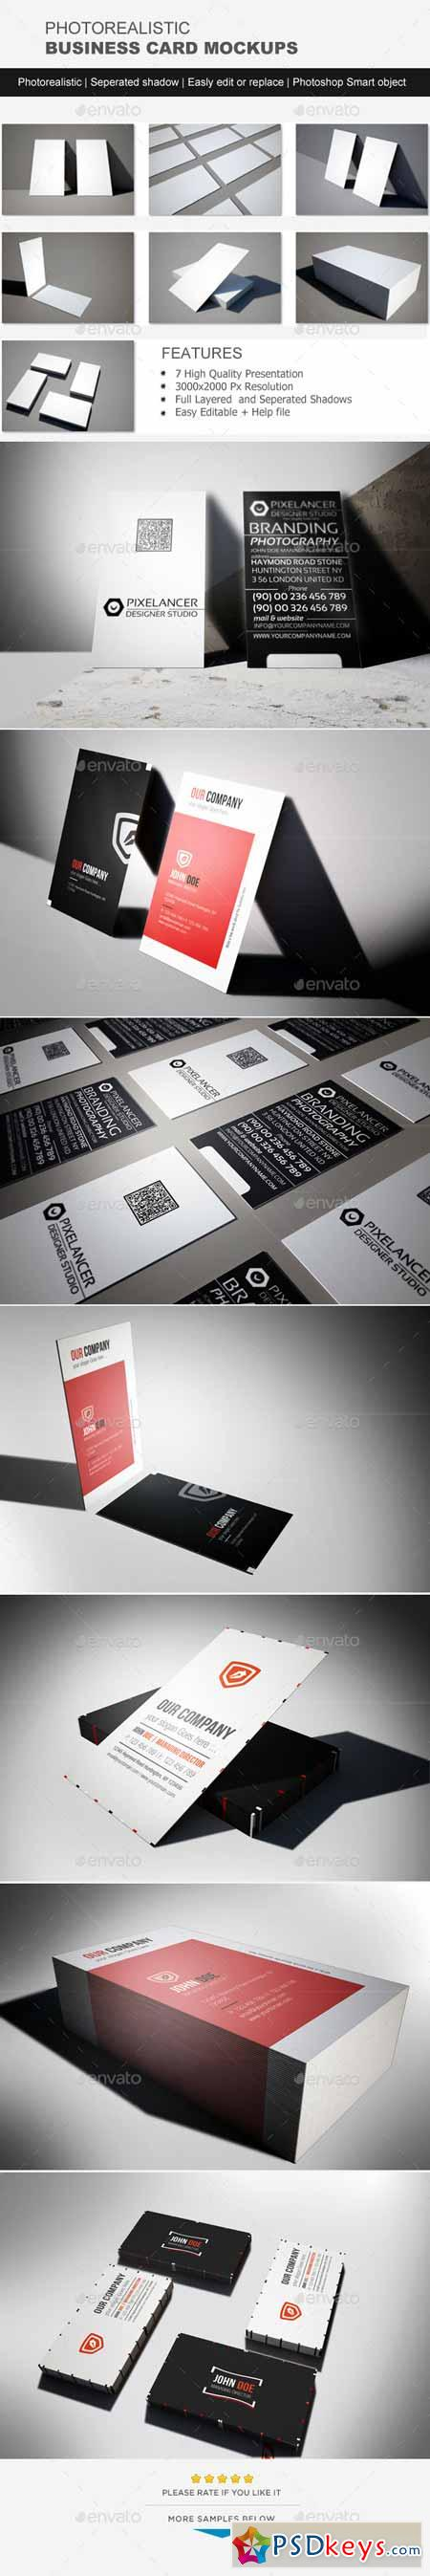 Photorealistic Business Card Mock-Up 11445256